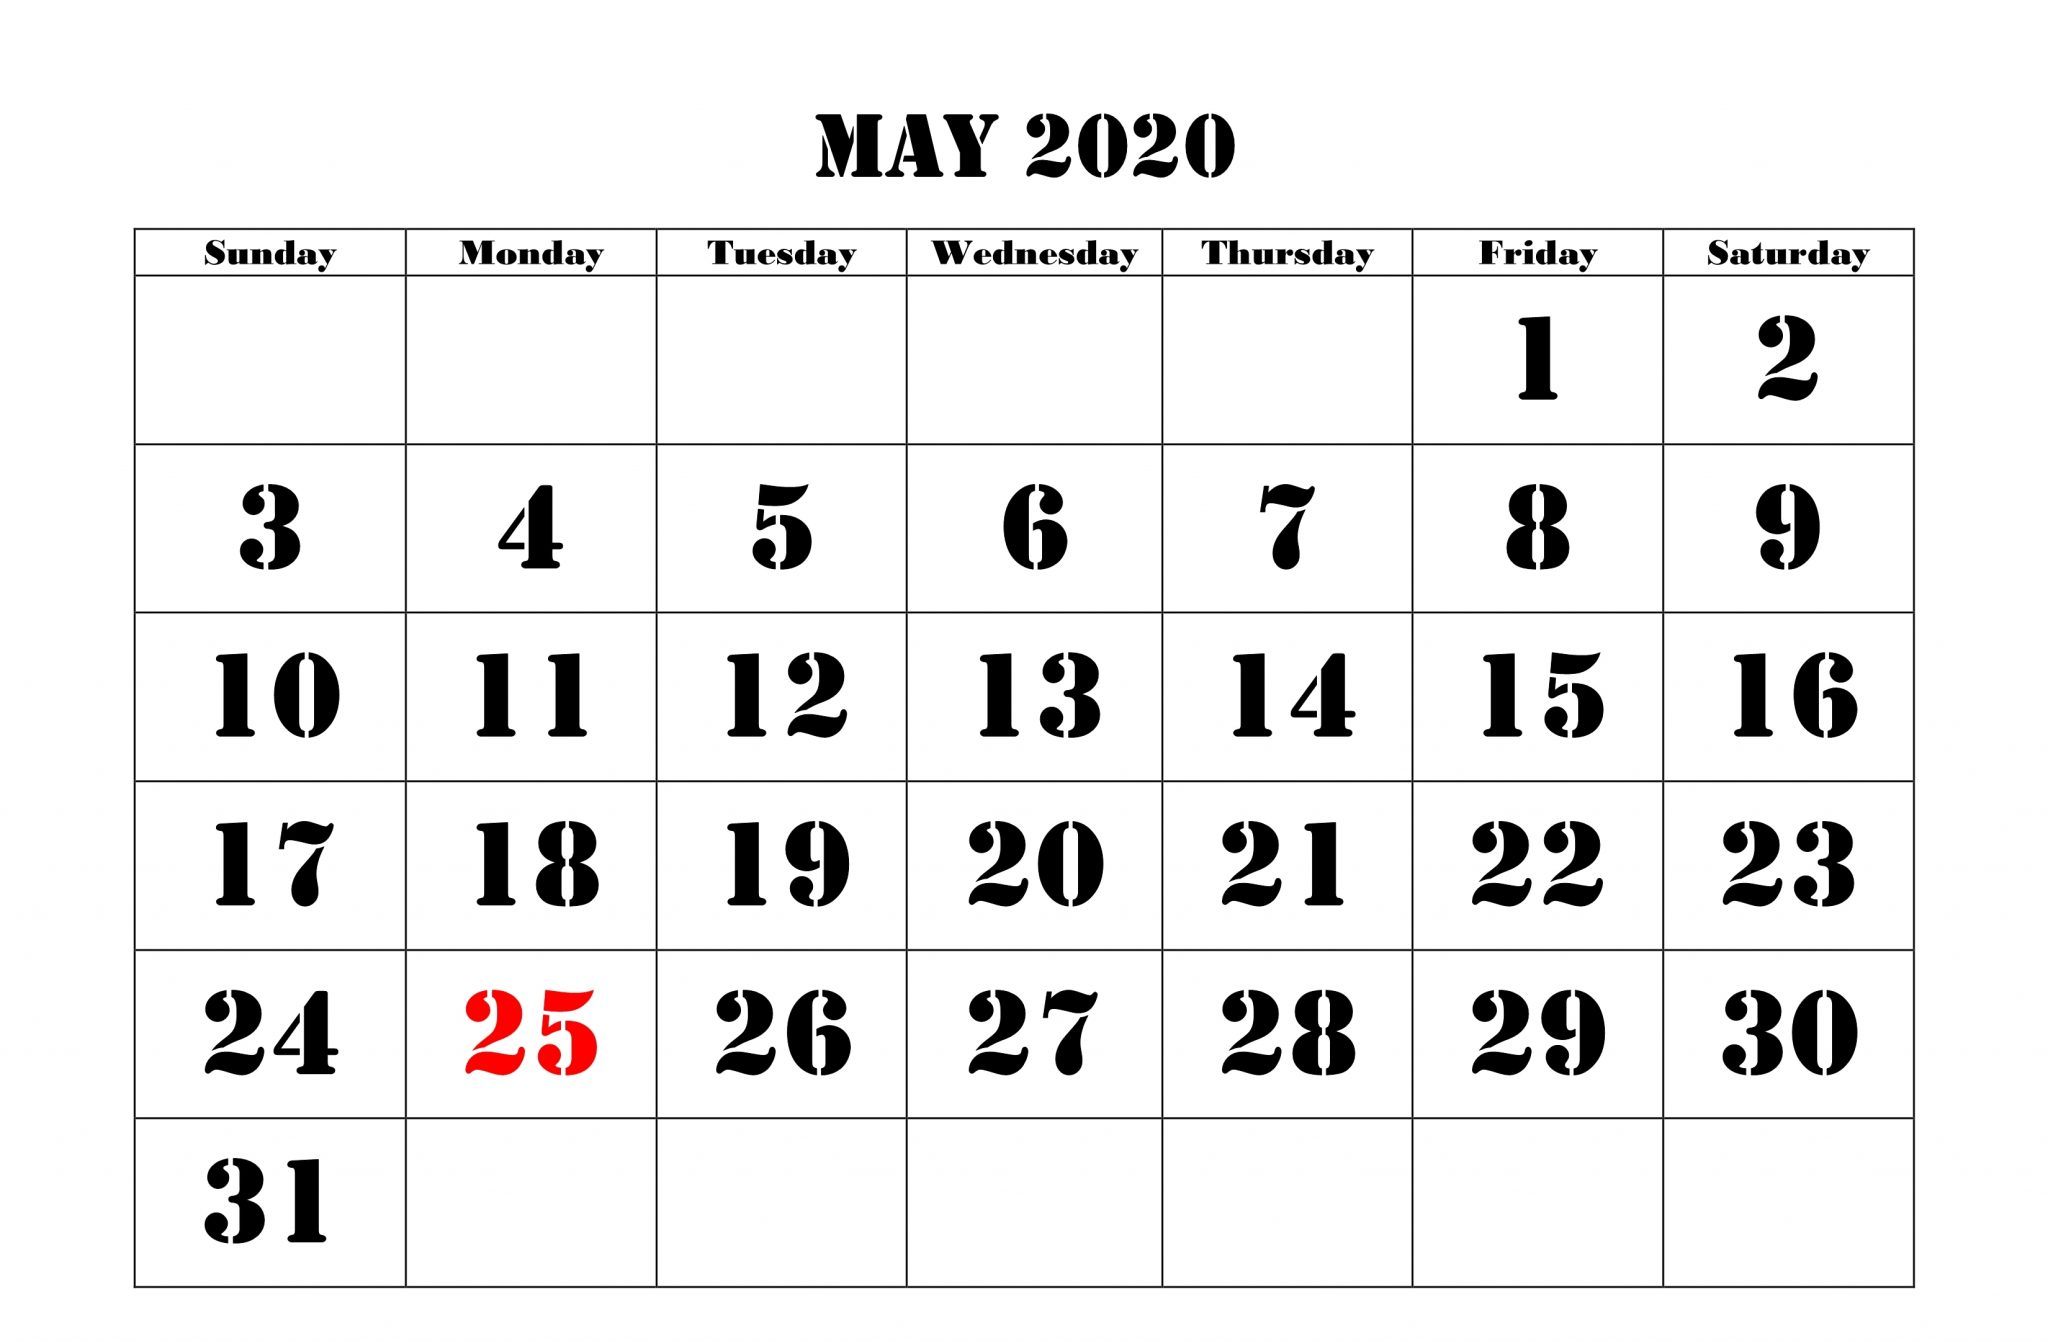 Fillable May 2020 Calendar A4 Size